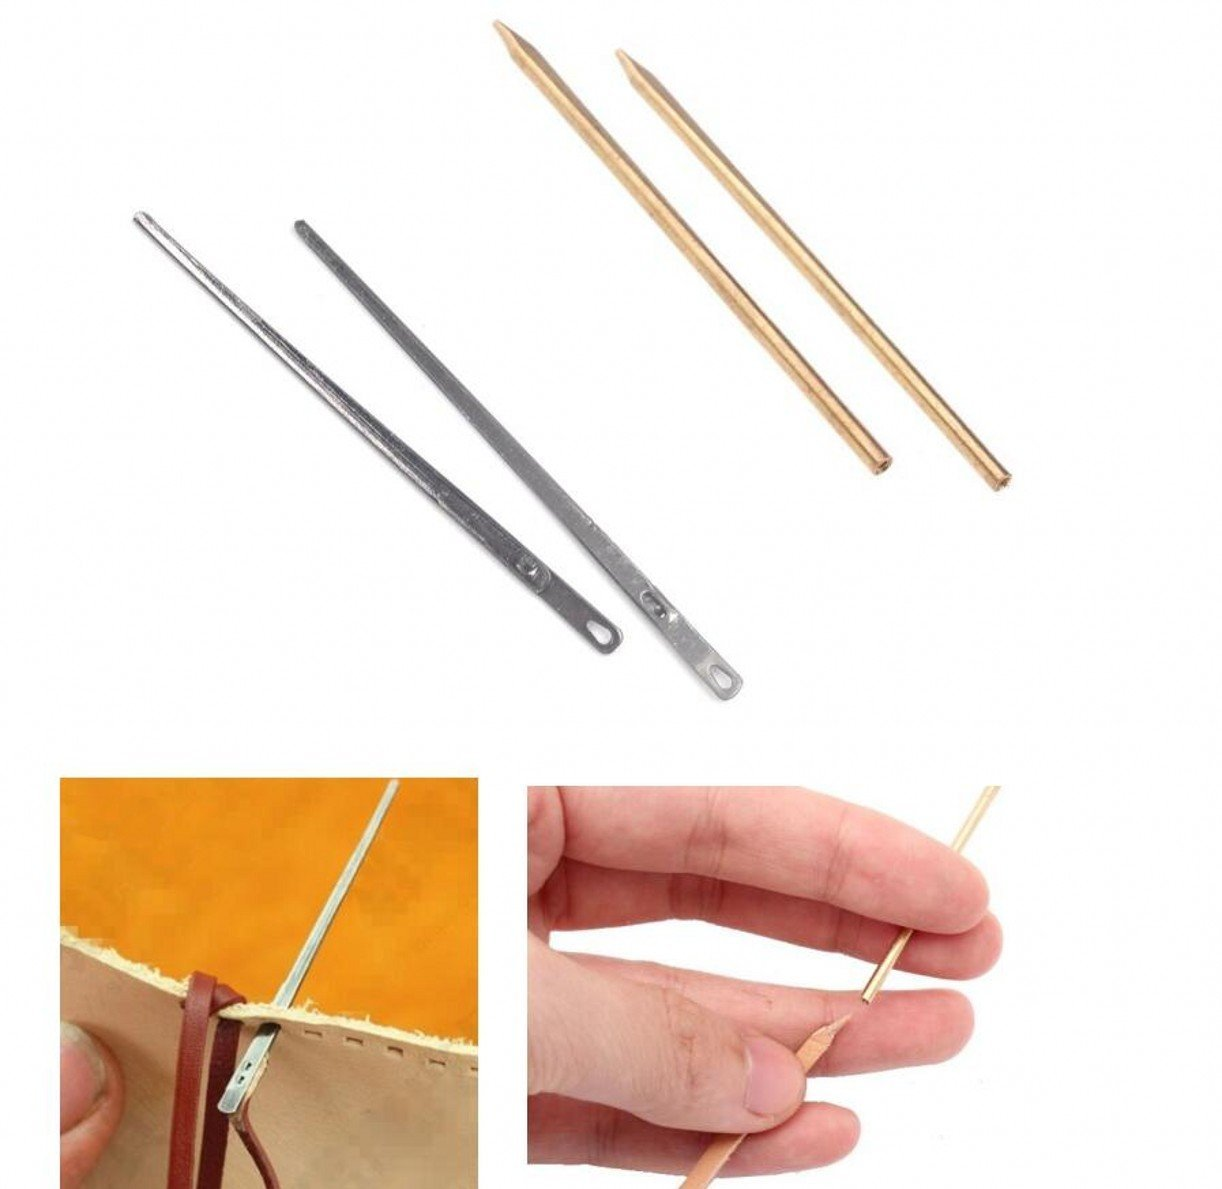 ZHONGJIUYUAN 4 Piece Leather Needle Kit Leather 2-Prong Lacing Needle and Brass Round Oblate Head Threaded Lacing Needle, Stitching Needles